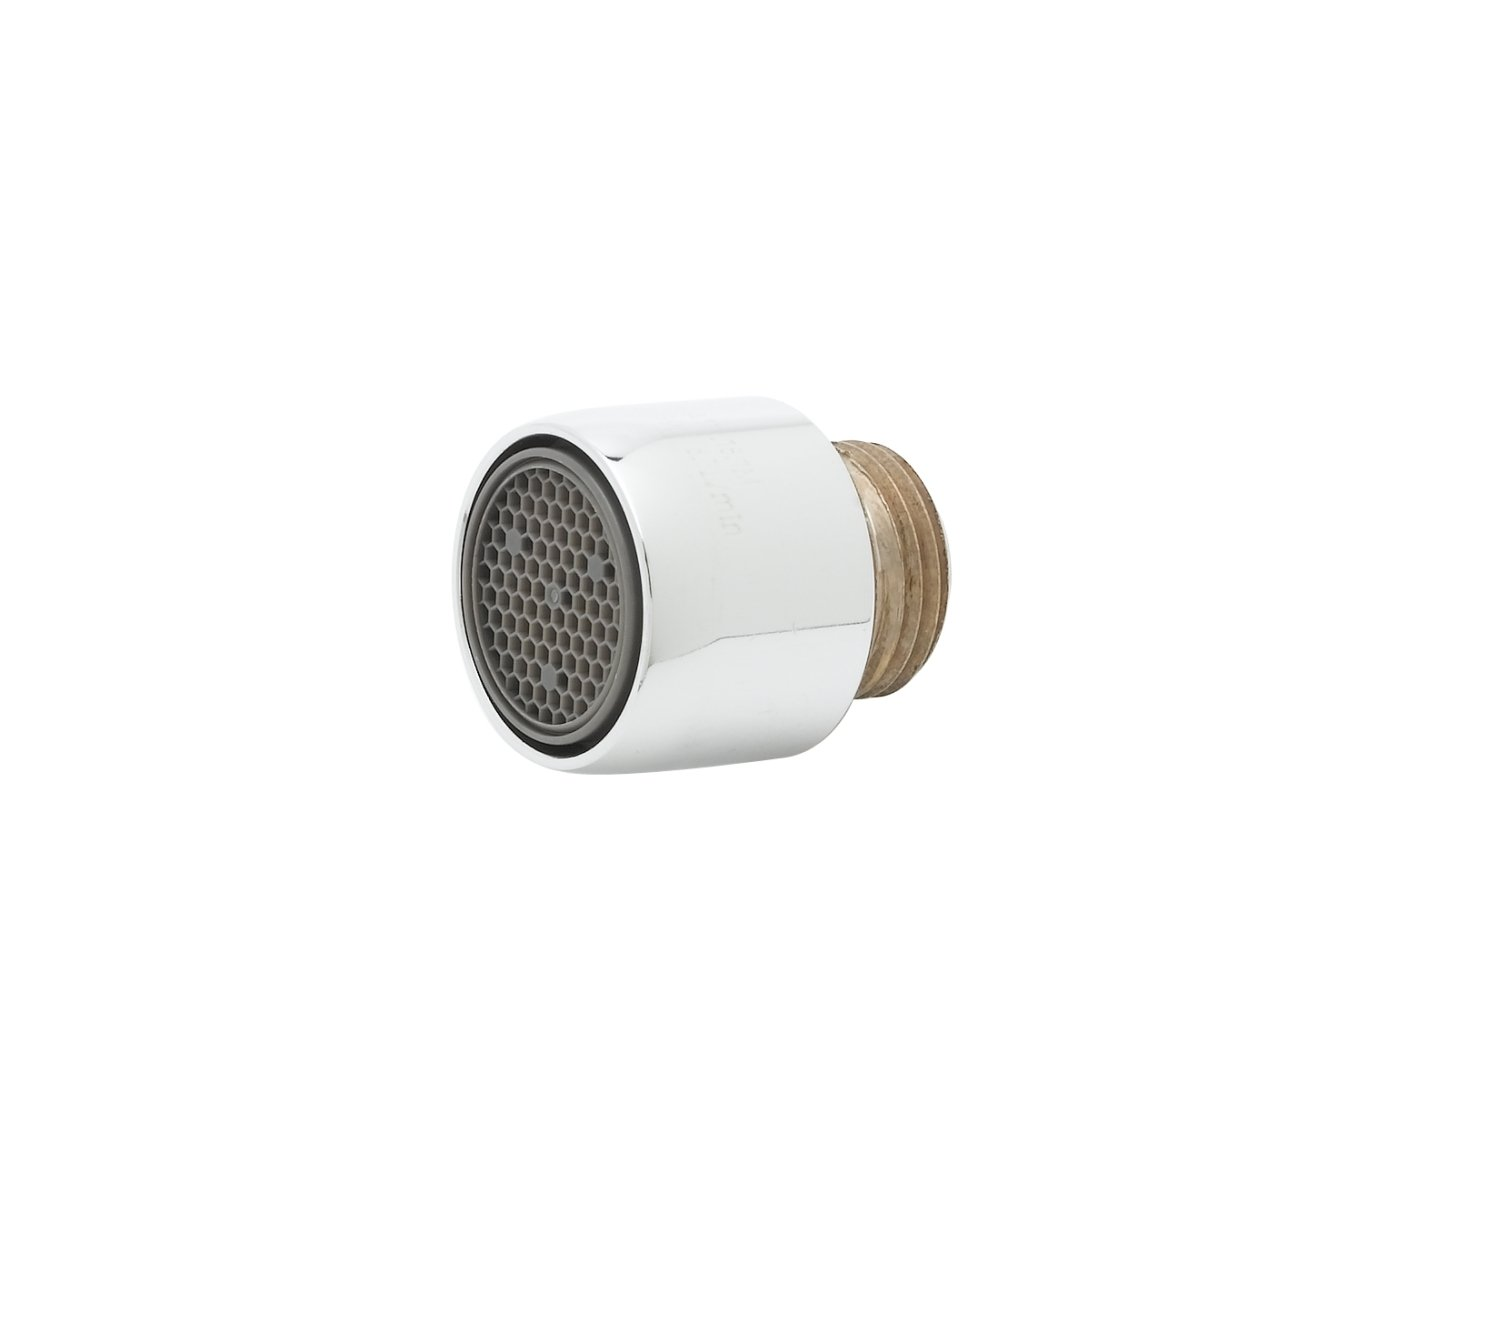 T&S Brass B-0199-02-F10 1.0 Gpm Aerator with  3/8-Inch Npsm Male Threads